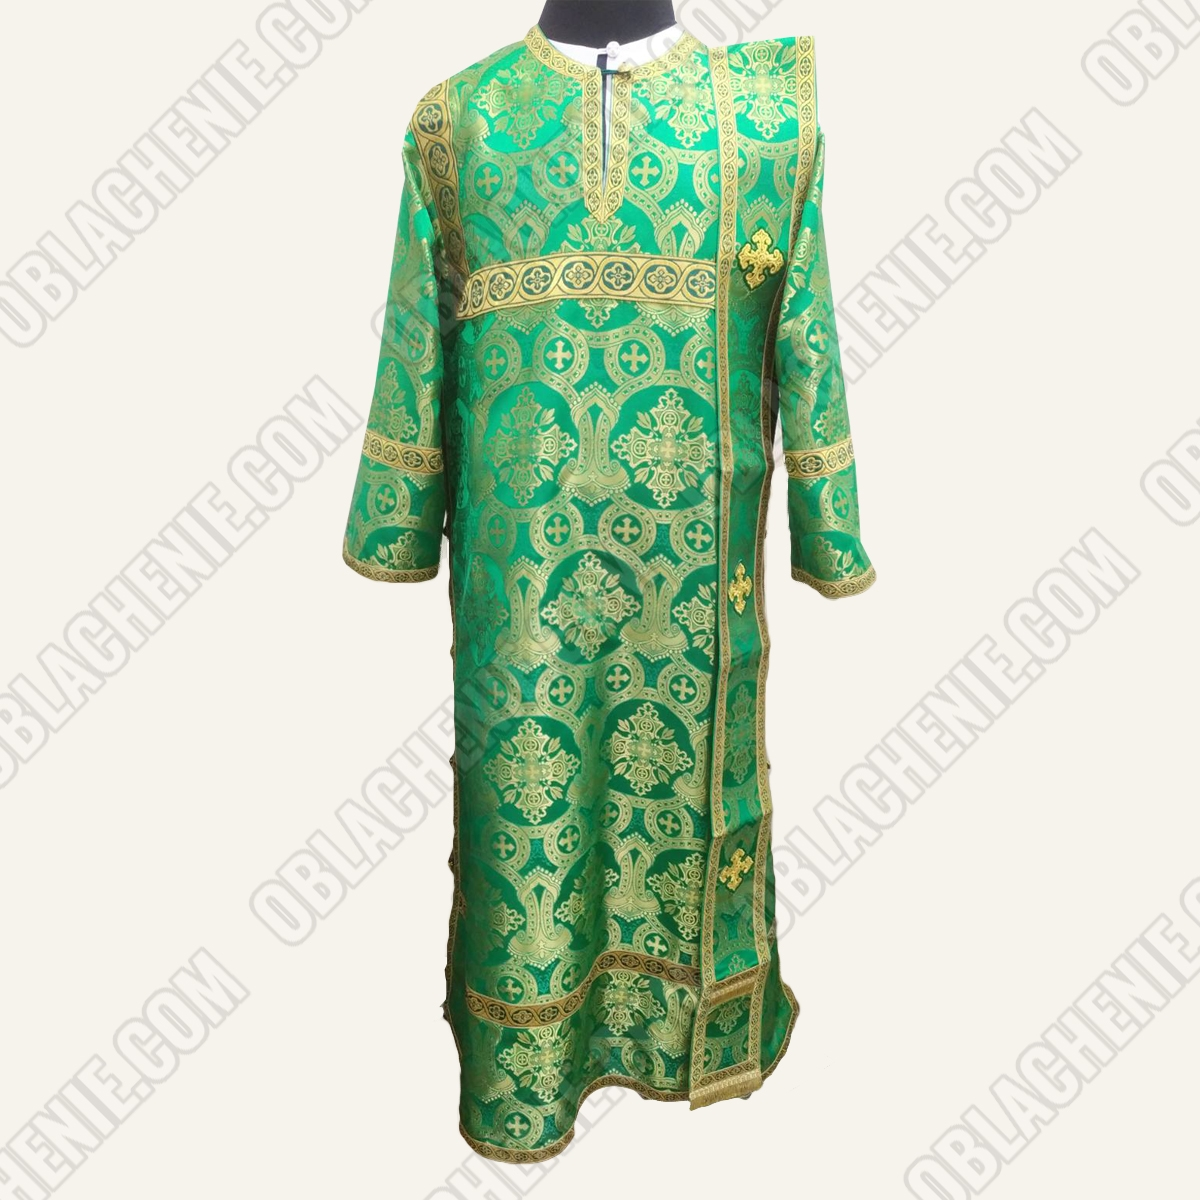 DEACON'S VESTMENTS 11090